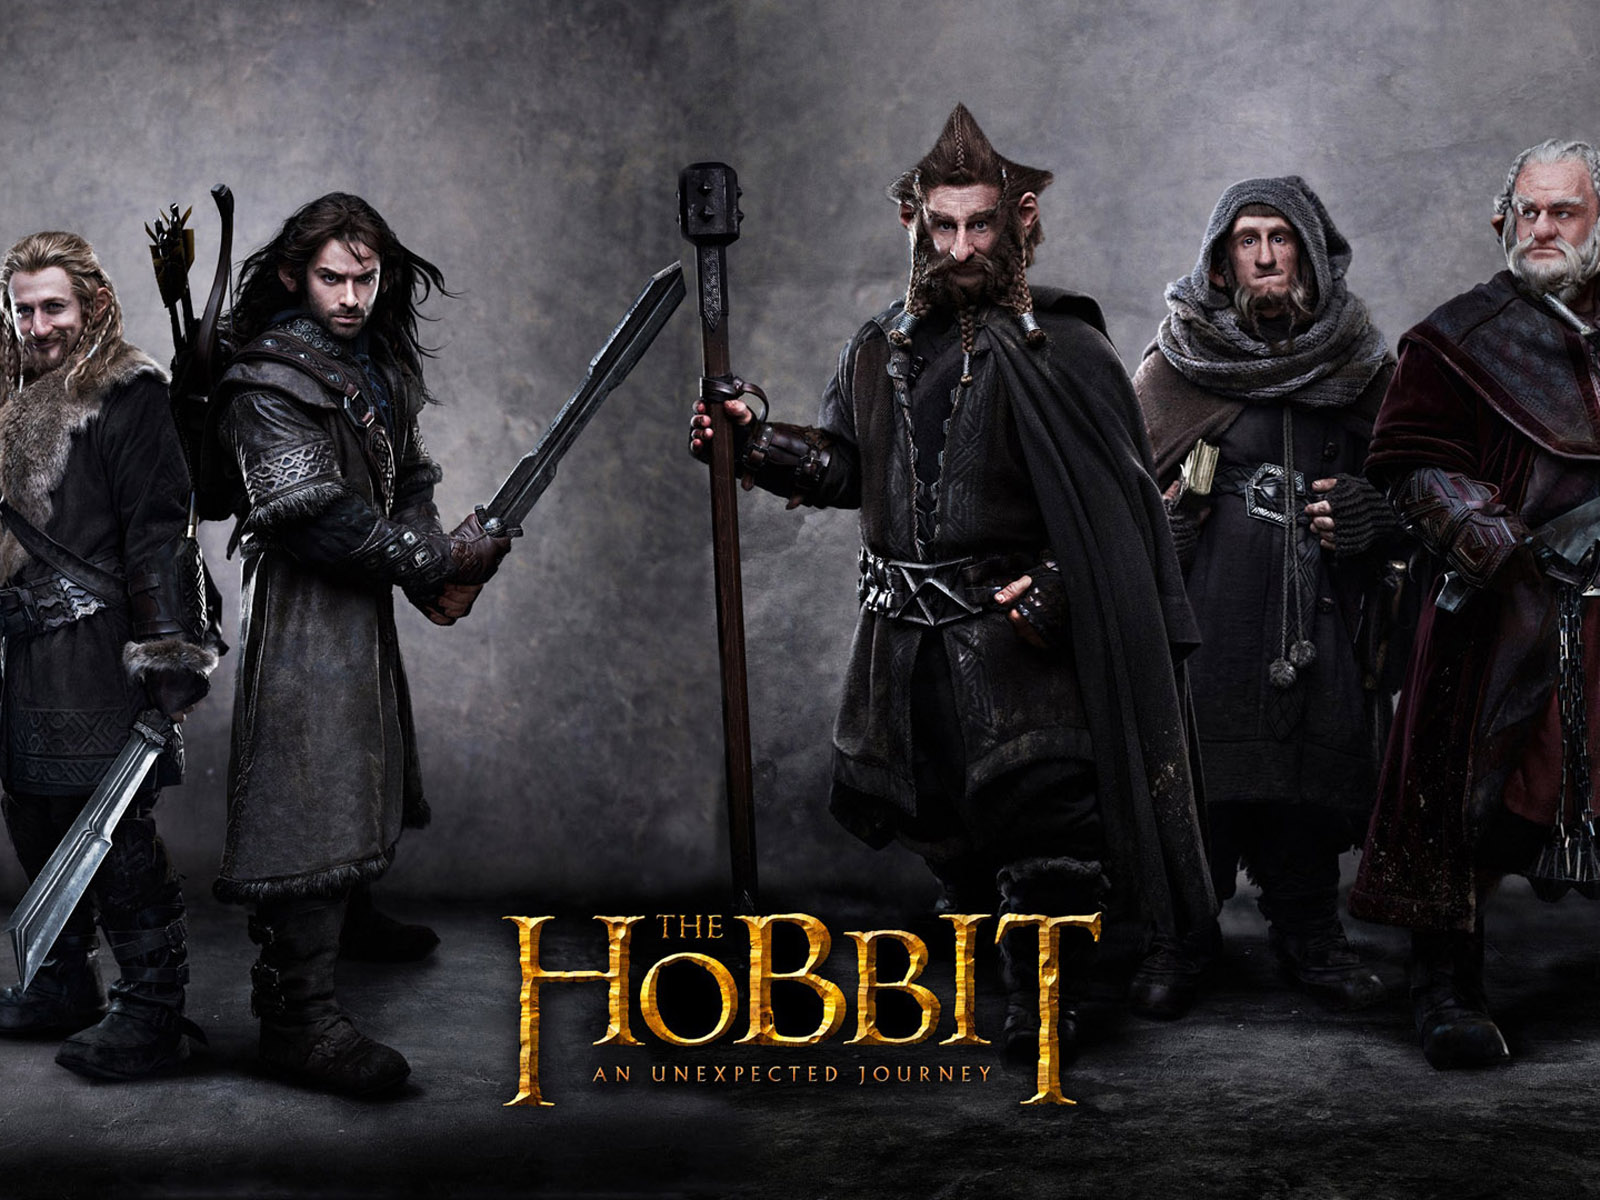 Hobbit Wallpaper 1600x1200 Wallpapers 1600x1200 Wallpapers Pictures 1600x1200